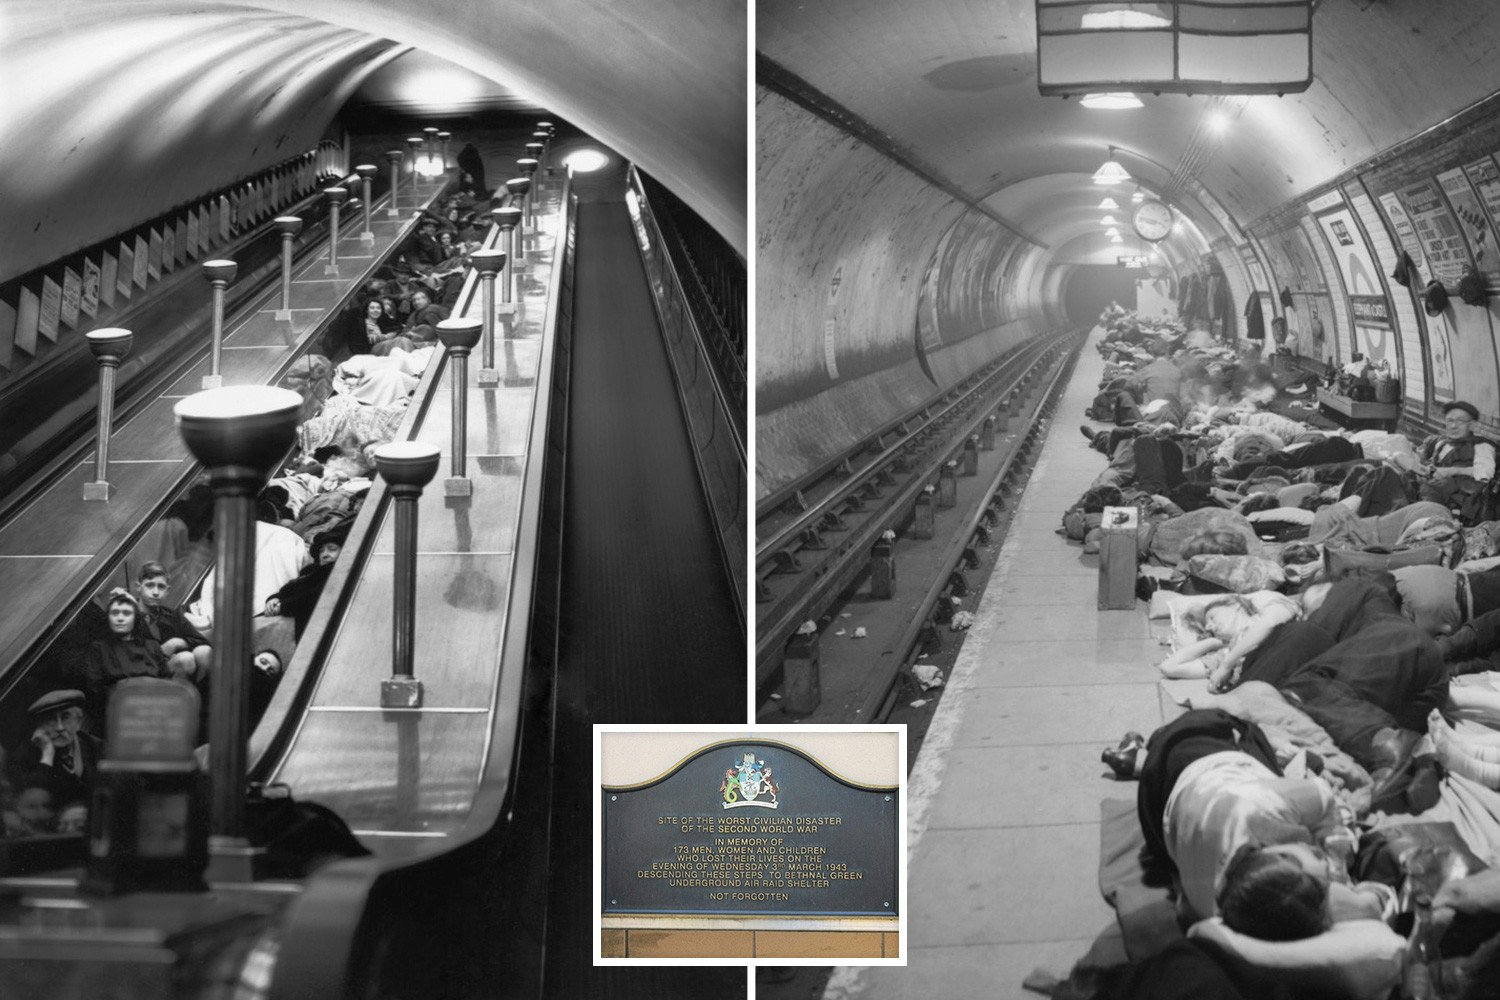 The secret story of Britain's biggest tube disaster which killed 173 people in 15 seconds in mass stampede but was covered up by the government